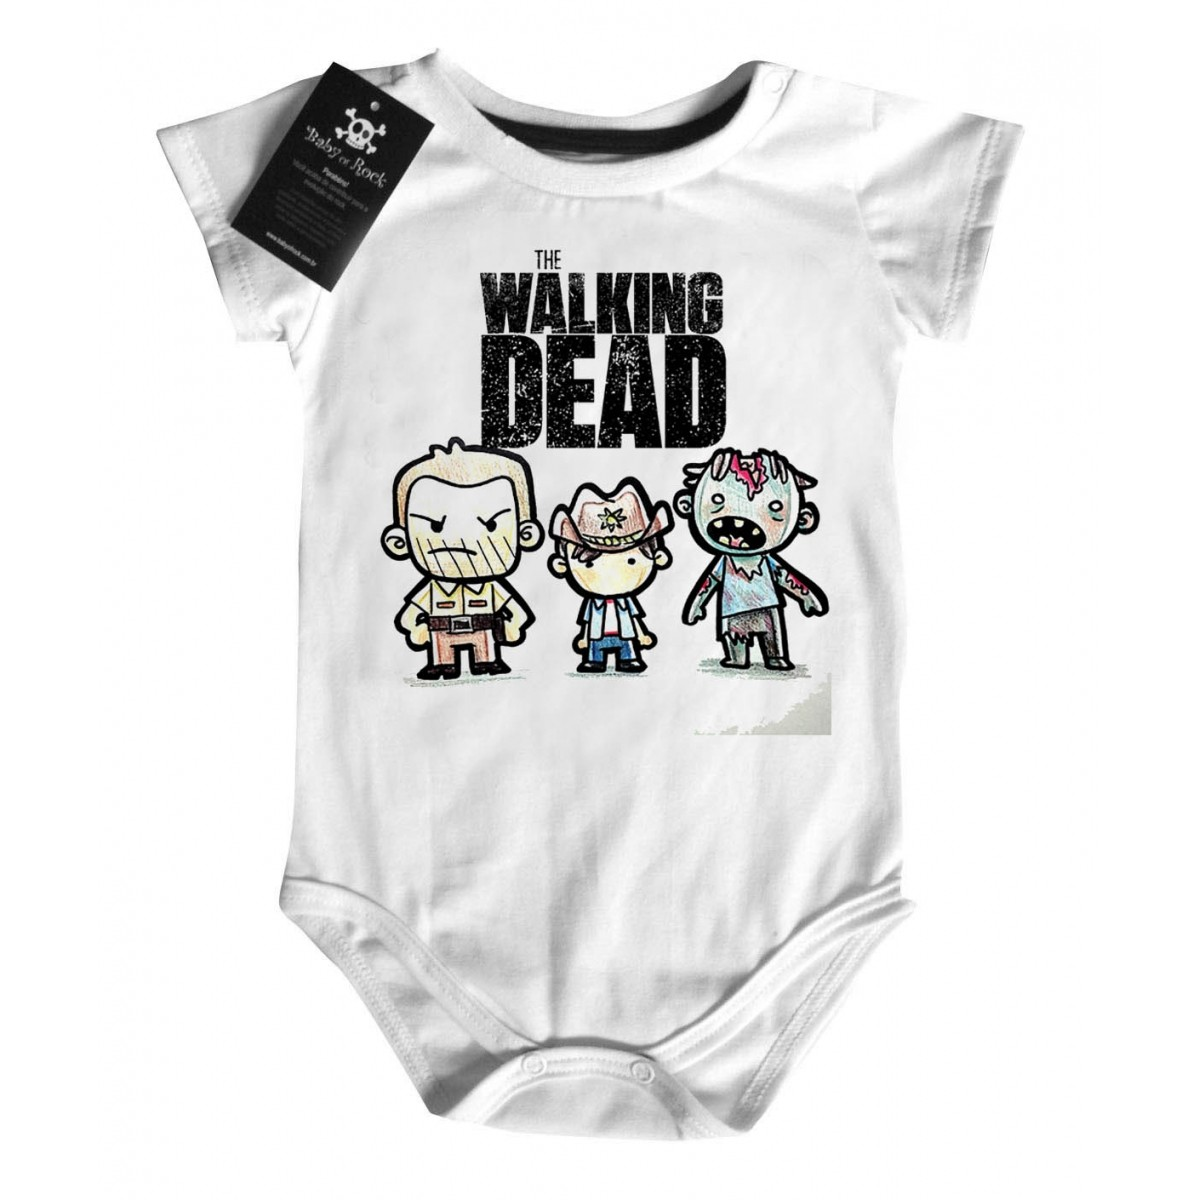 Body Bebê the walking dead - White  - Baby Monster - Body Bebe